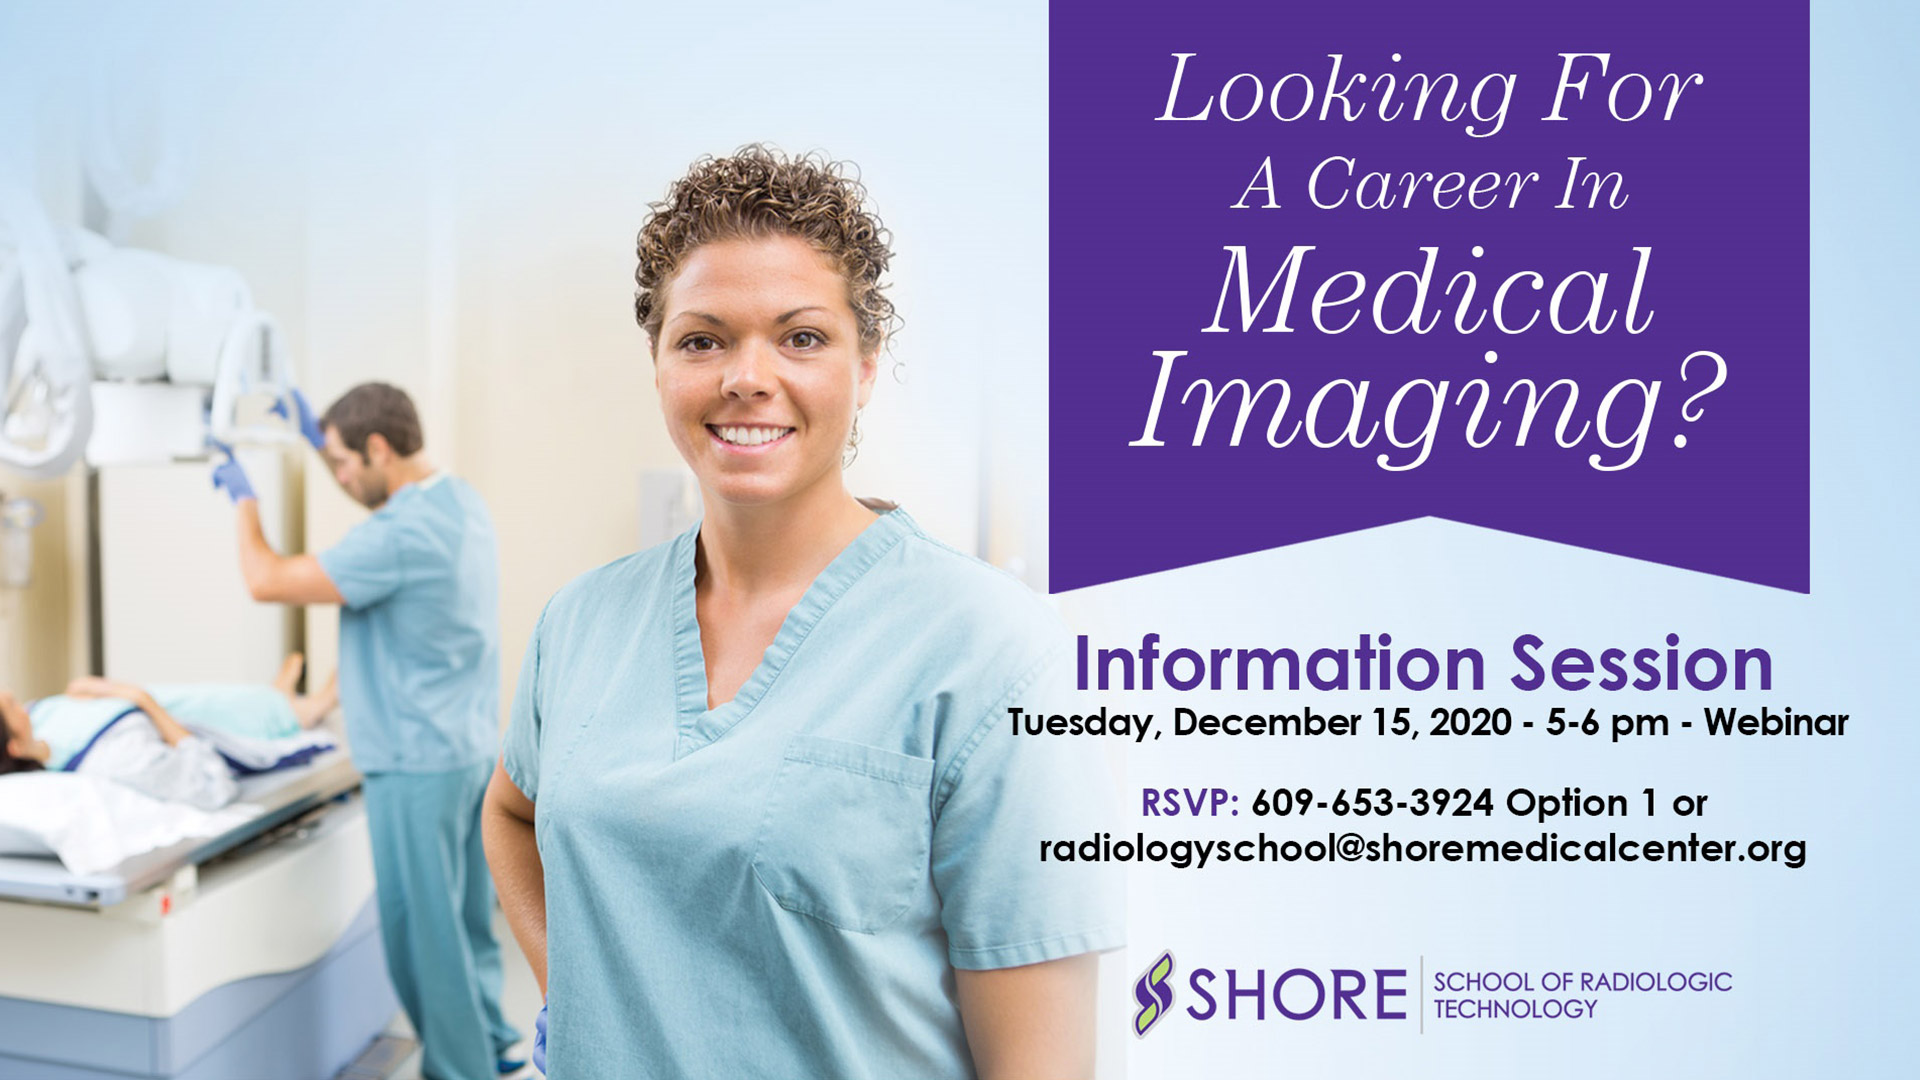 Looking for a career in medical imaging?